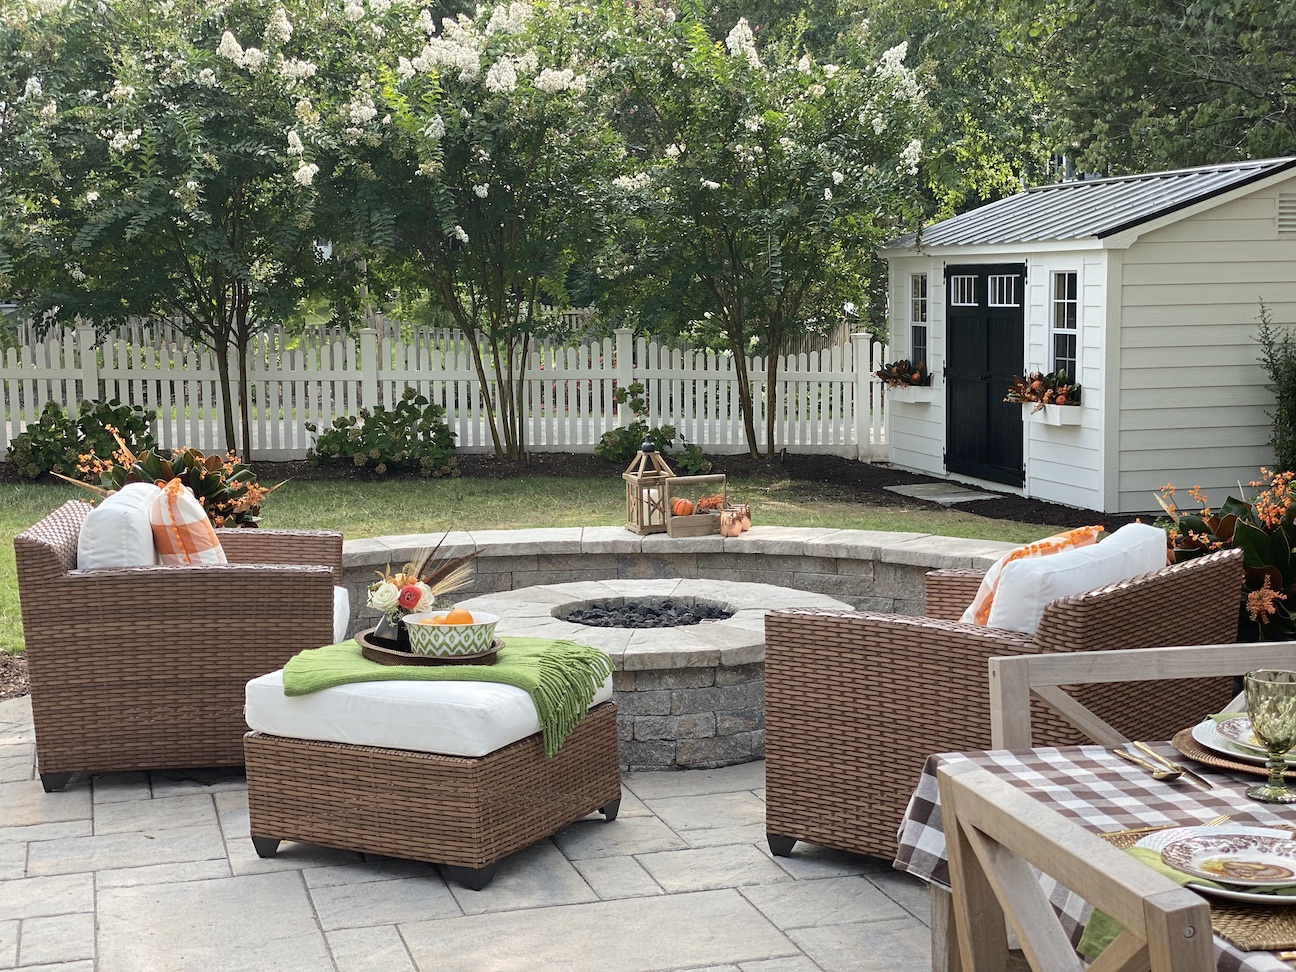 5 Ways to Use Fire Features for the Hottest Backyard on the Block